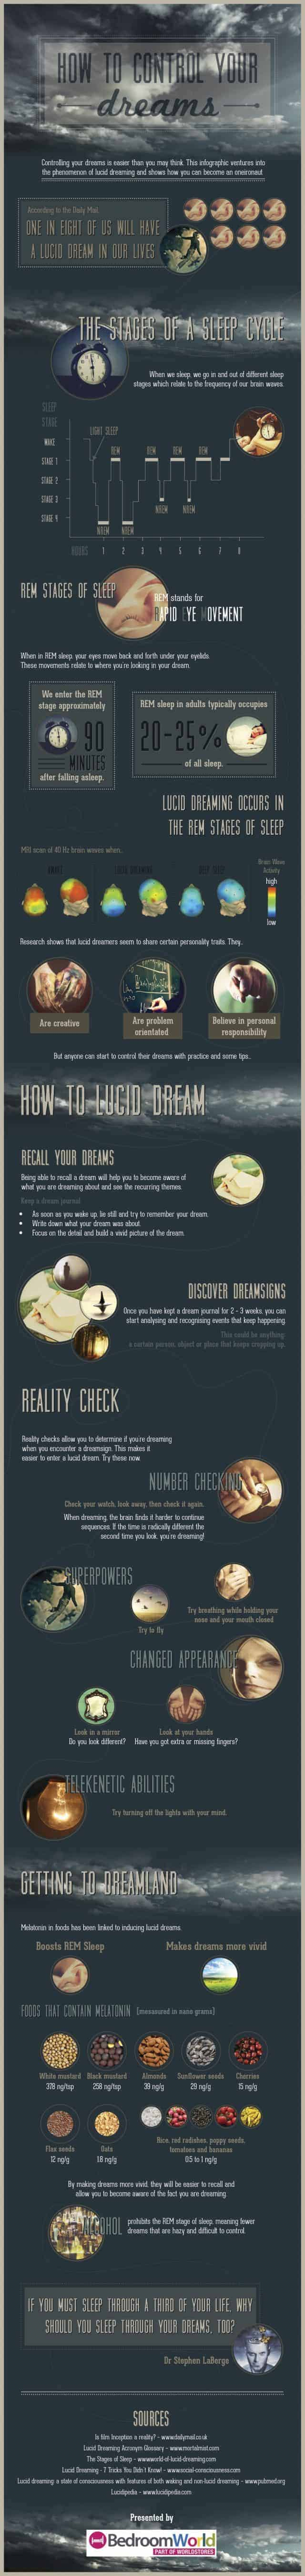 how_to_control_your_dreams